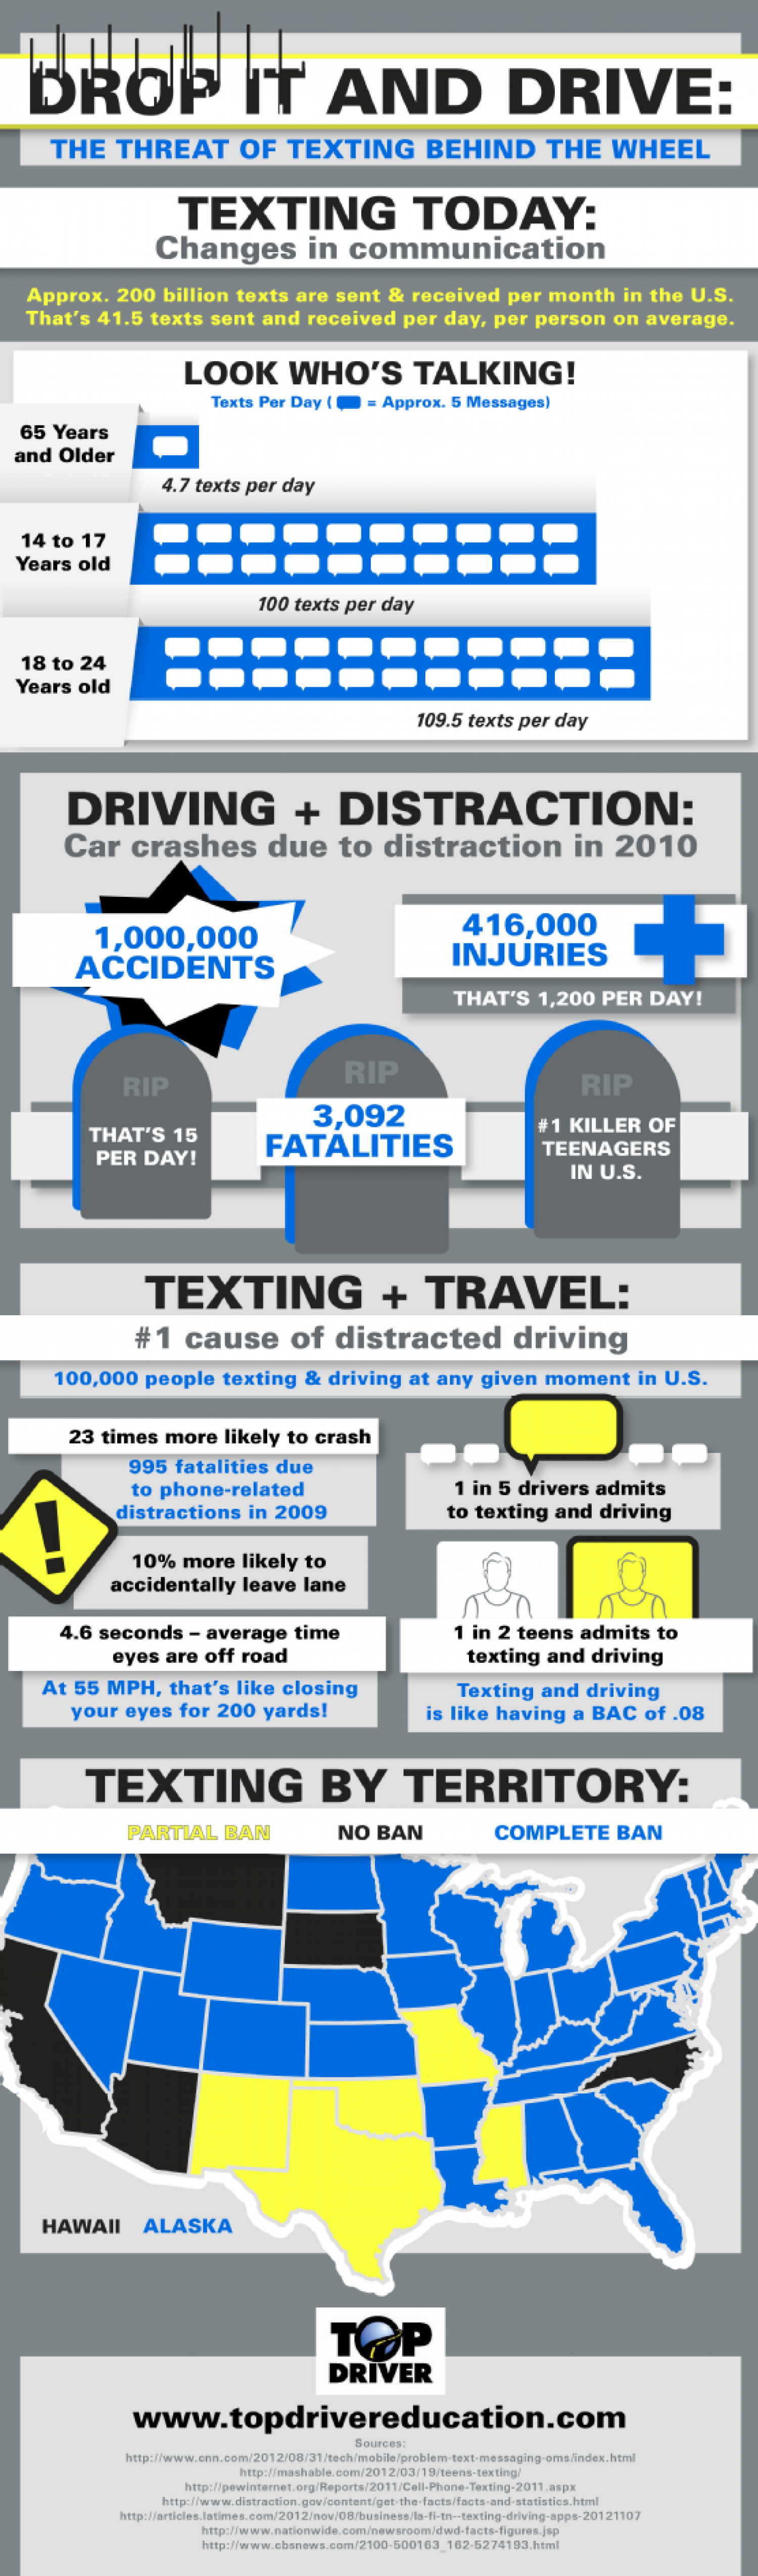 Drop It and Drive: The Threat of Texting Behind the Wheel  Infographic